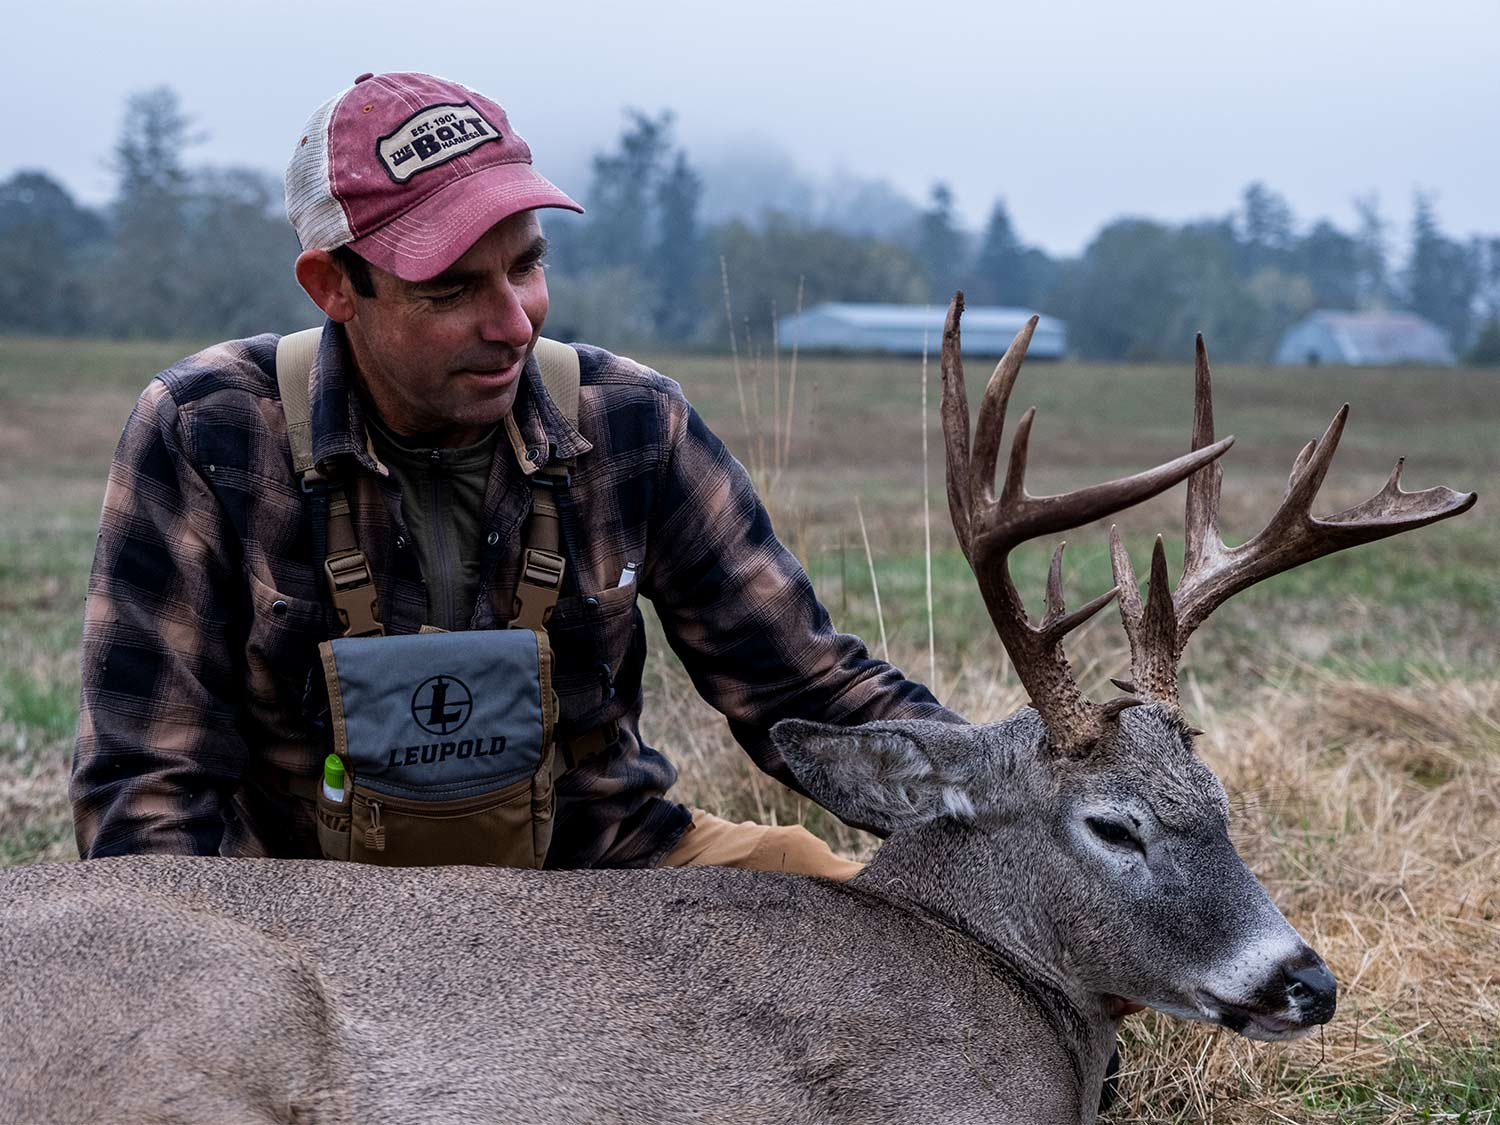 A hunter kneels behind a deer and holds its head up by the antlers.